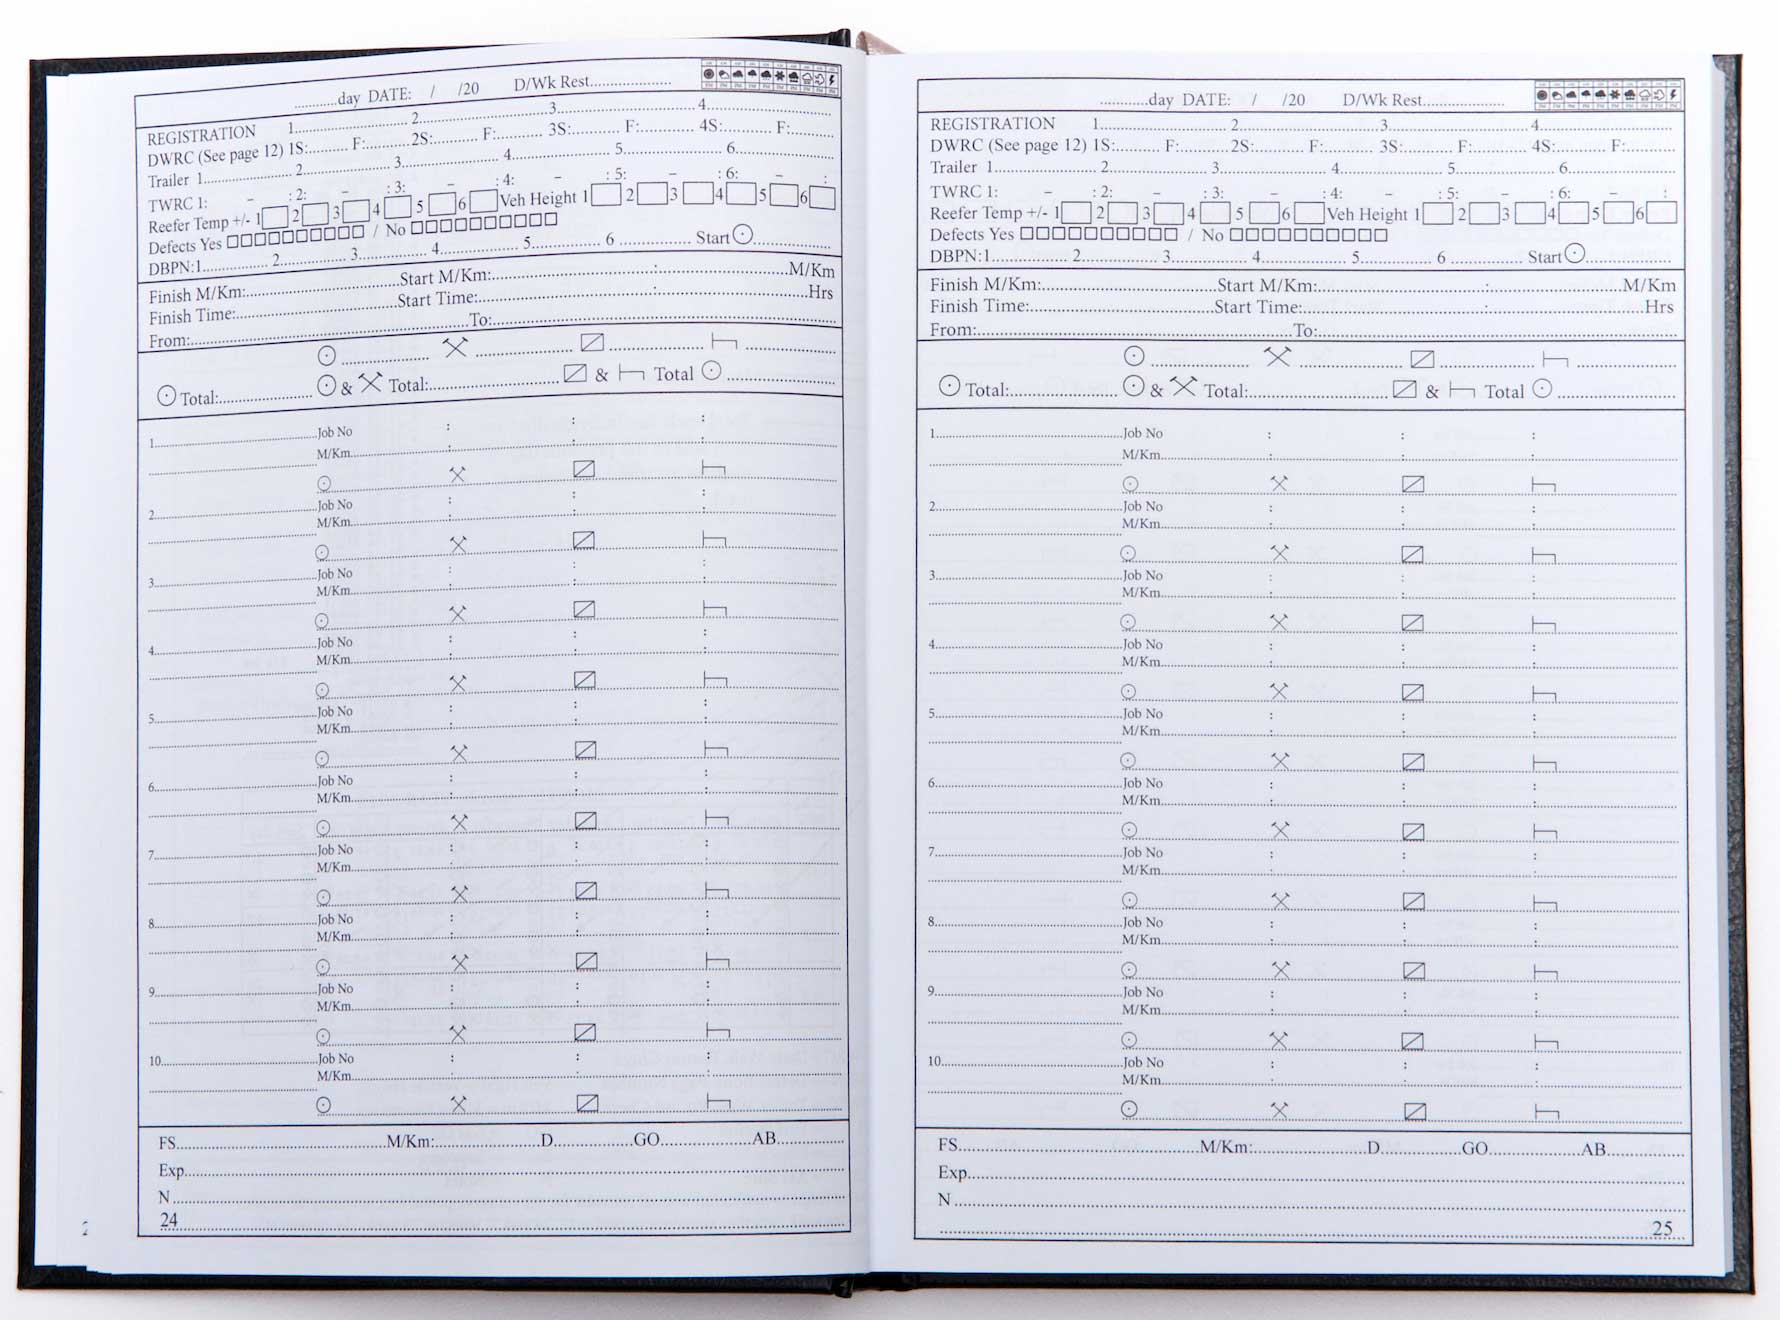 Hgv Driver'S Diary regarding 2021 Yearly Calander Hgv Shift Schedule